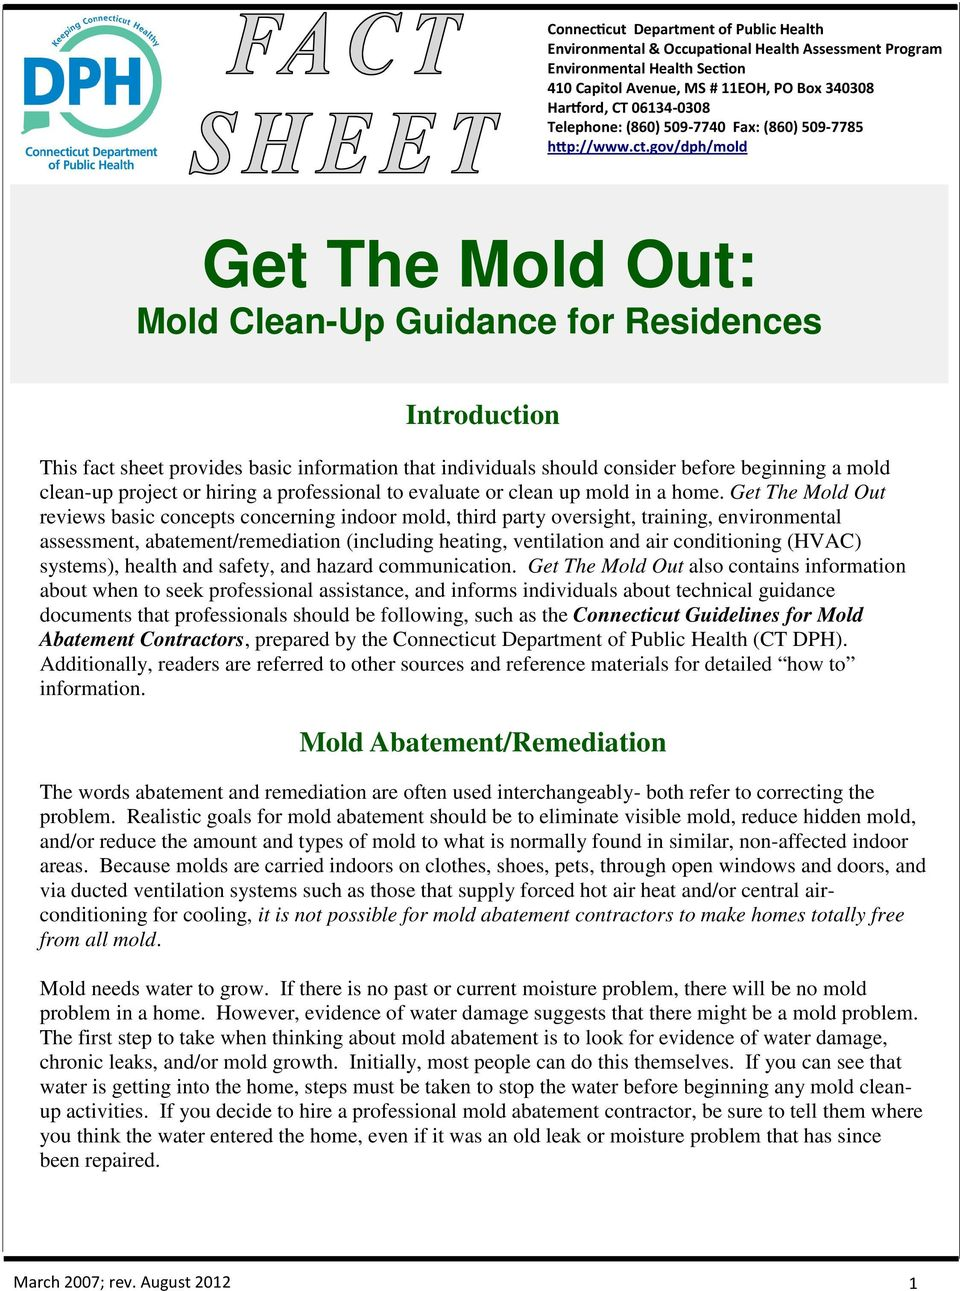 gov/dph/mold Get The Mold Out: Mold Clean-Up Guidance for Residences Introduction This fact sheet provides basic information that individuals should consider before beginning a mold clean-up project